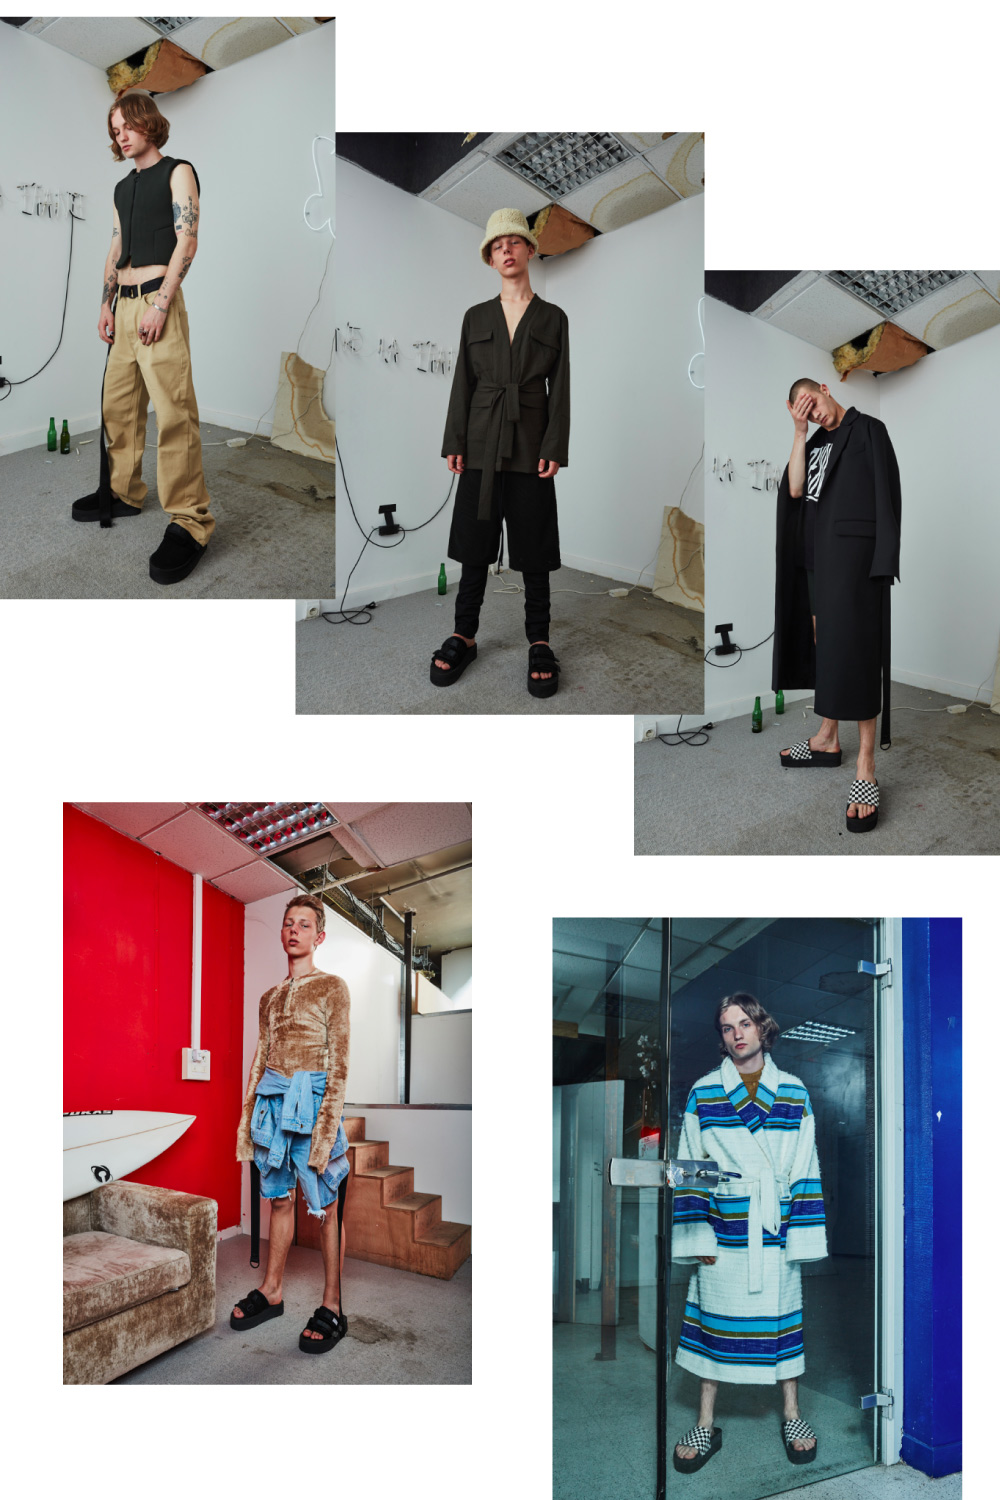 ex infinitas SS17 fashion collage by lelook